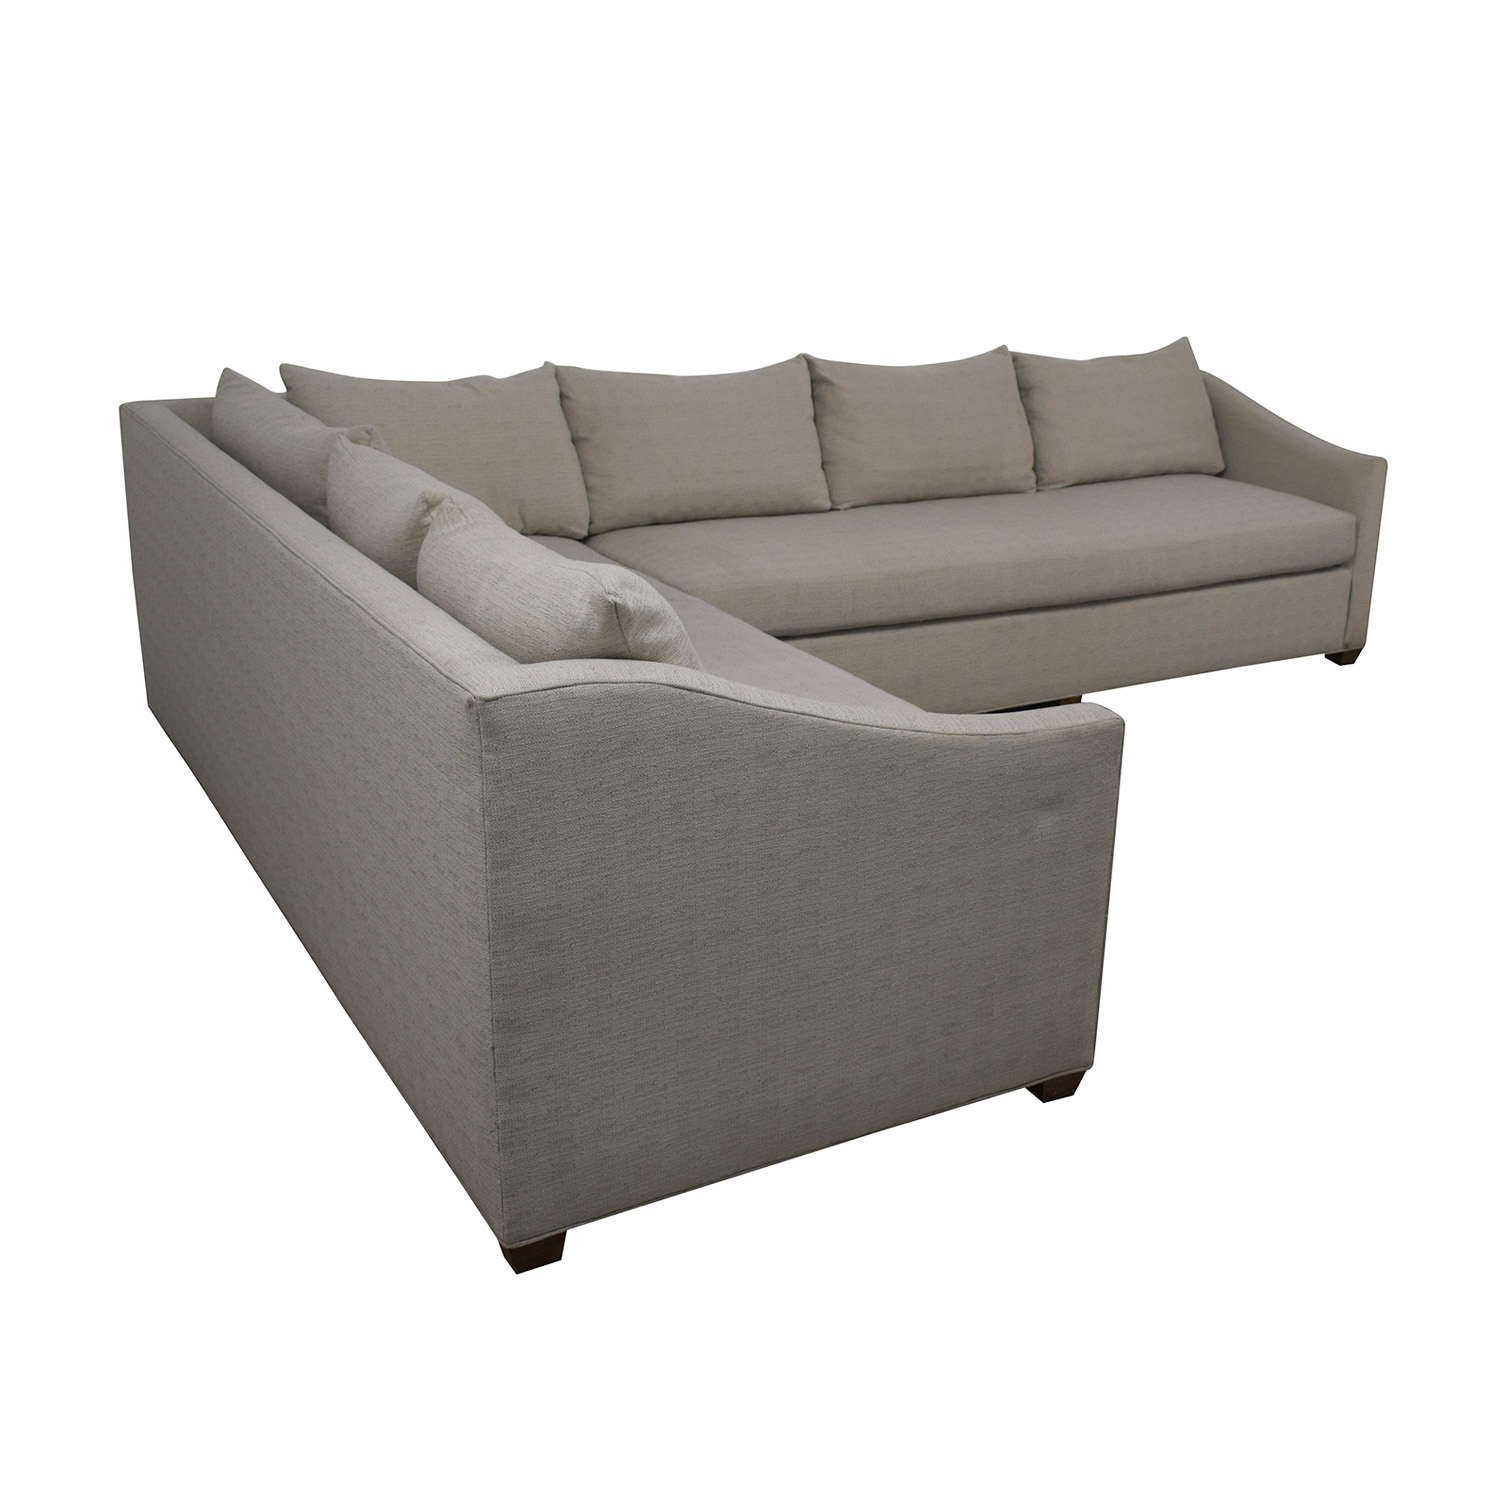 Maiden Home Maiden Home Sullivan Grey L-Shaped Sectional used